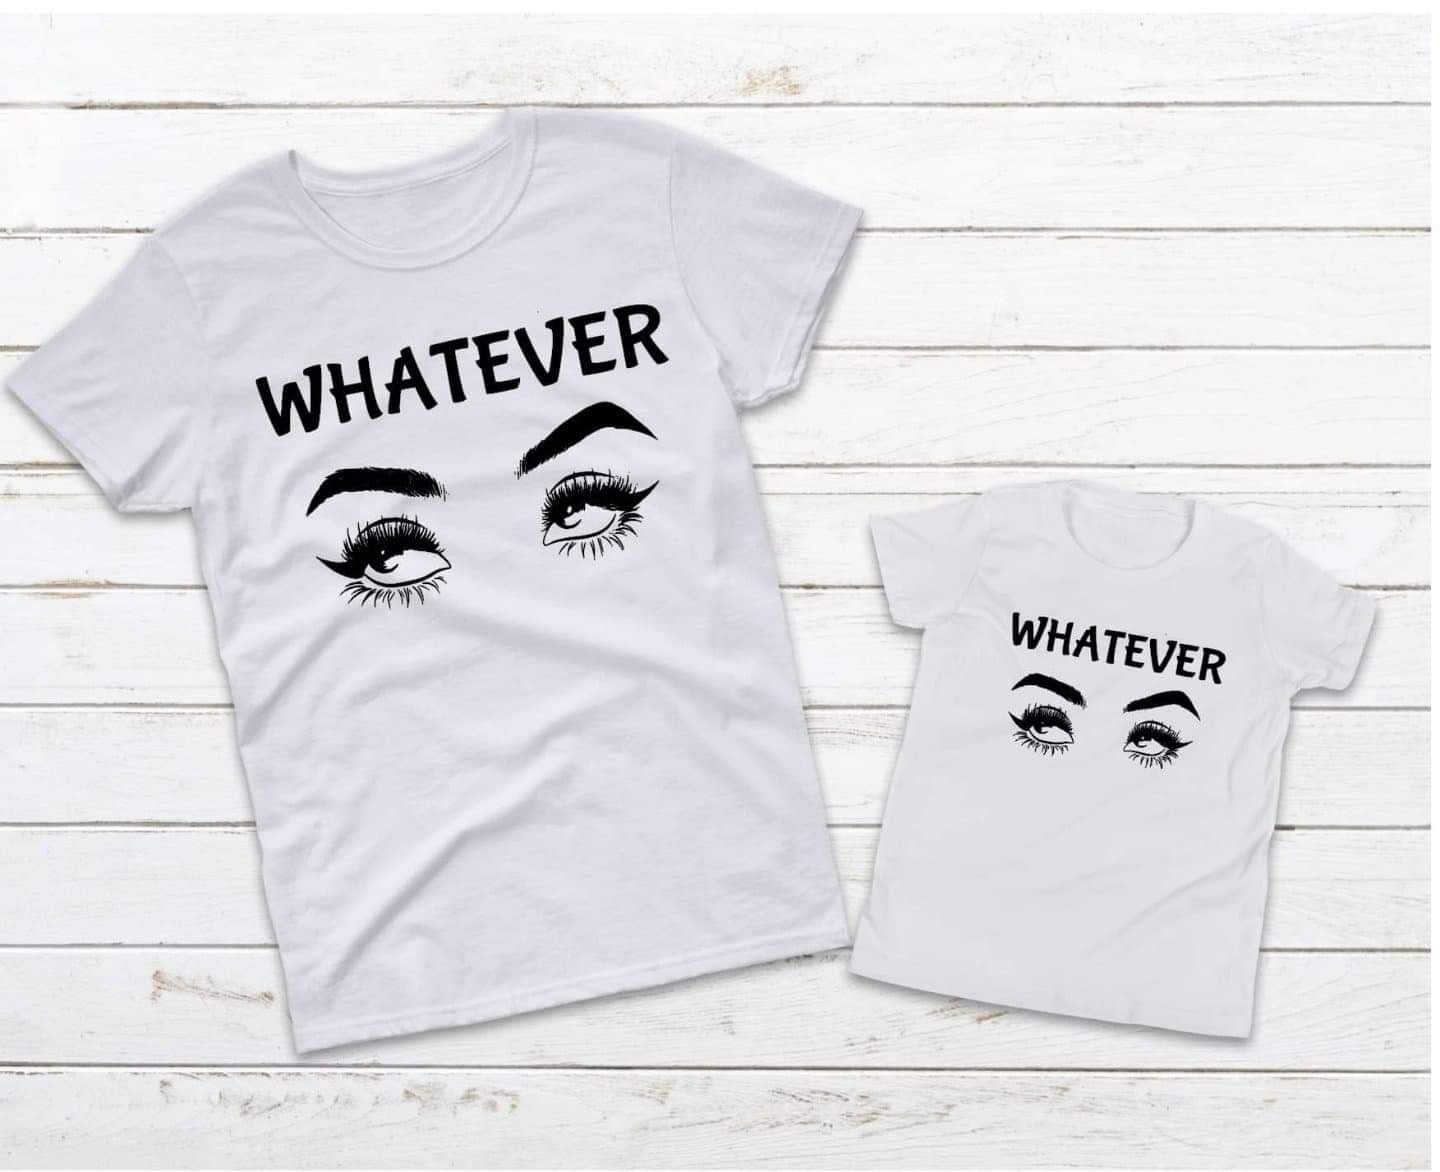 Whatever - Adult Tee